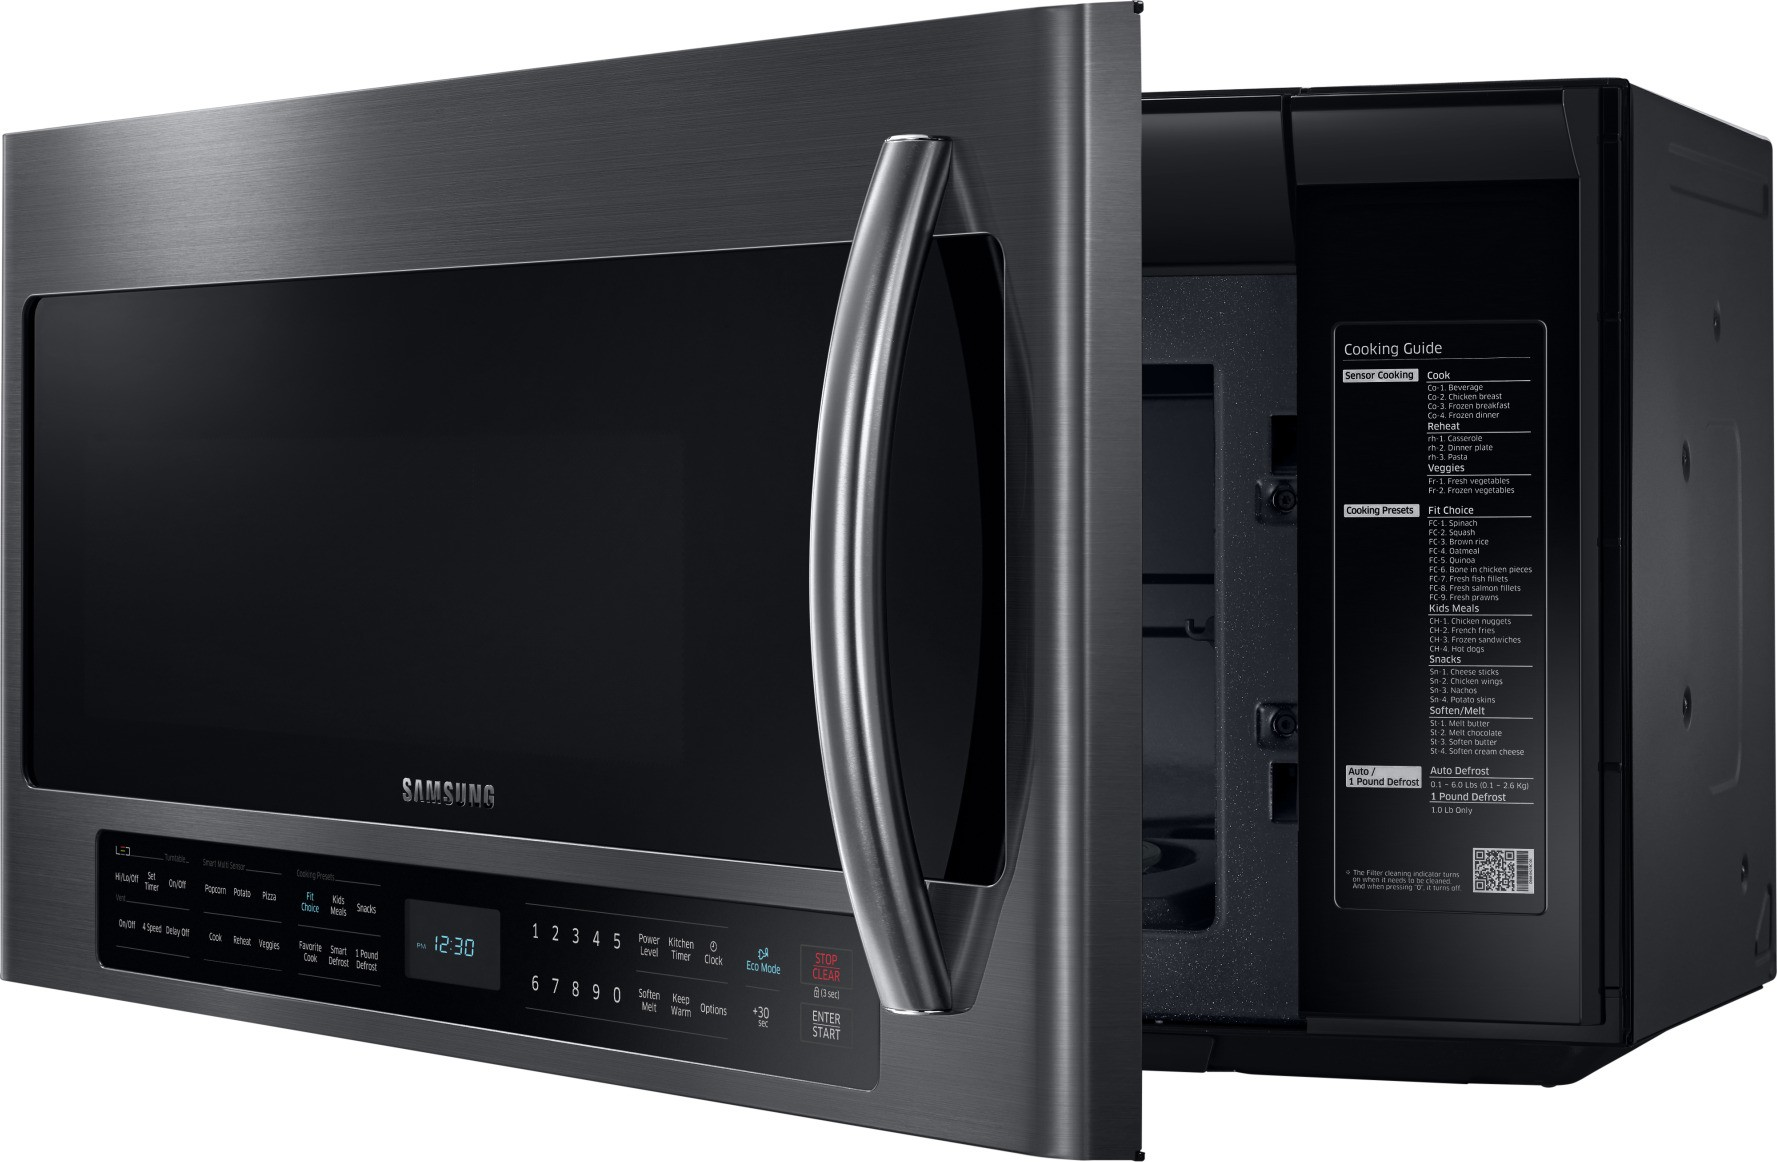 Me21h706mqg Samsung 2 1 Cu Ft Over The Range Microwave